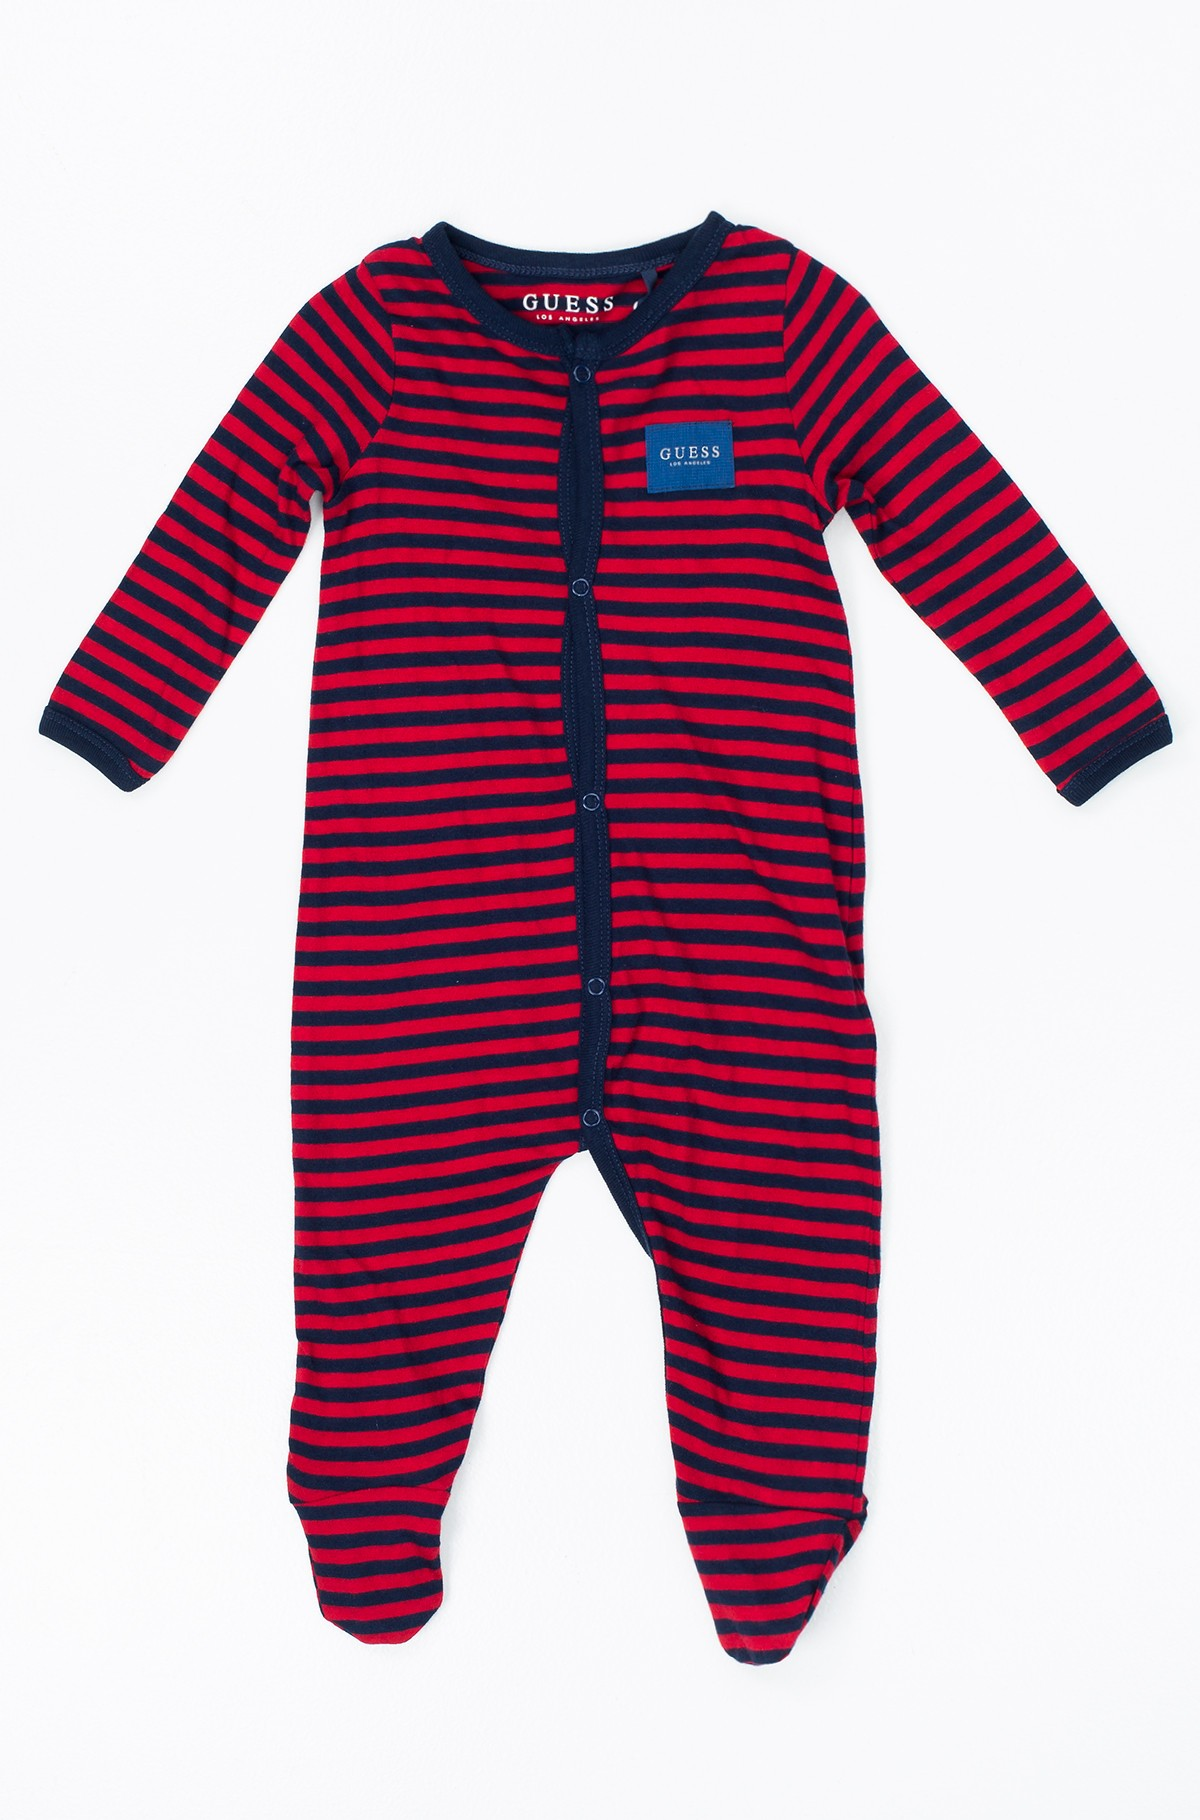 Children s onesie P81G07 I3Z00 Guess Womens Kids